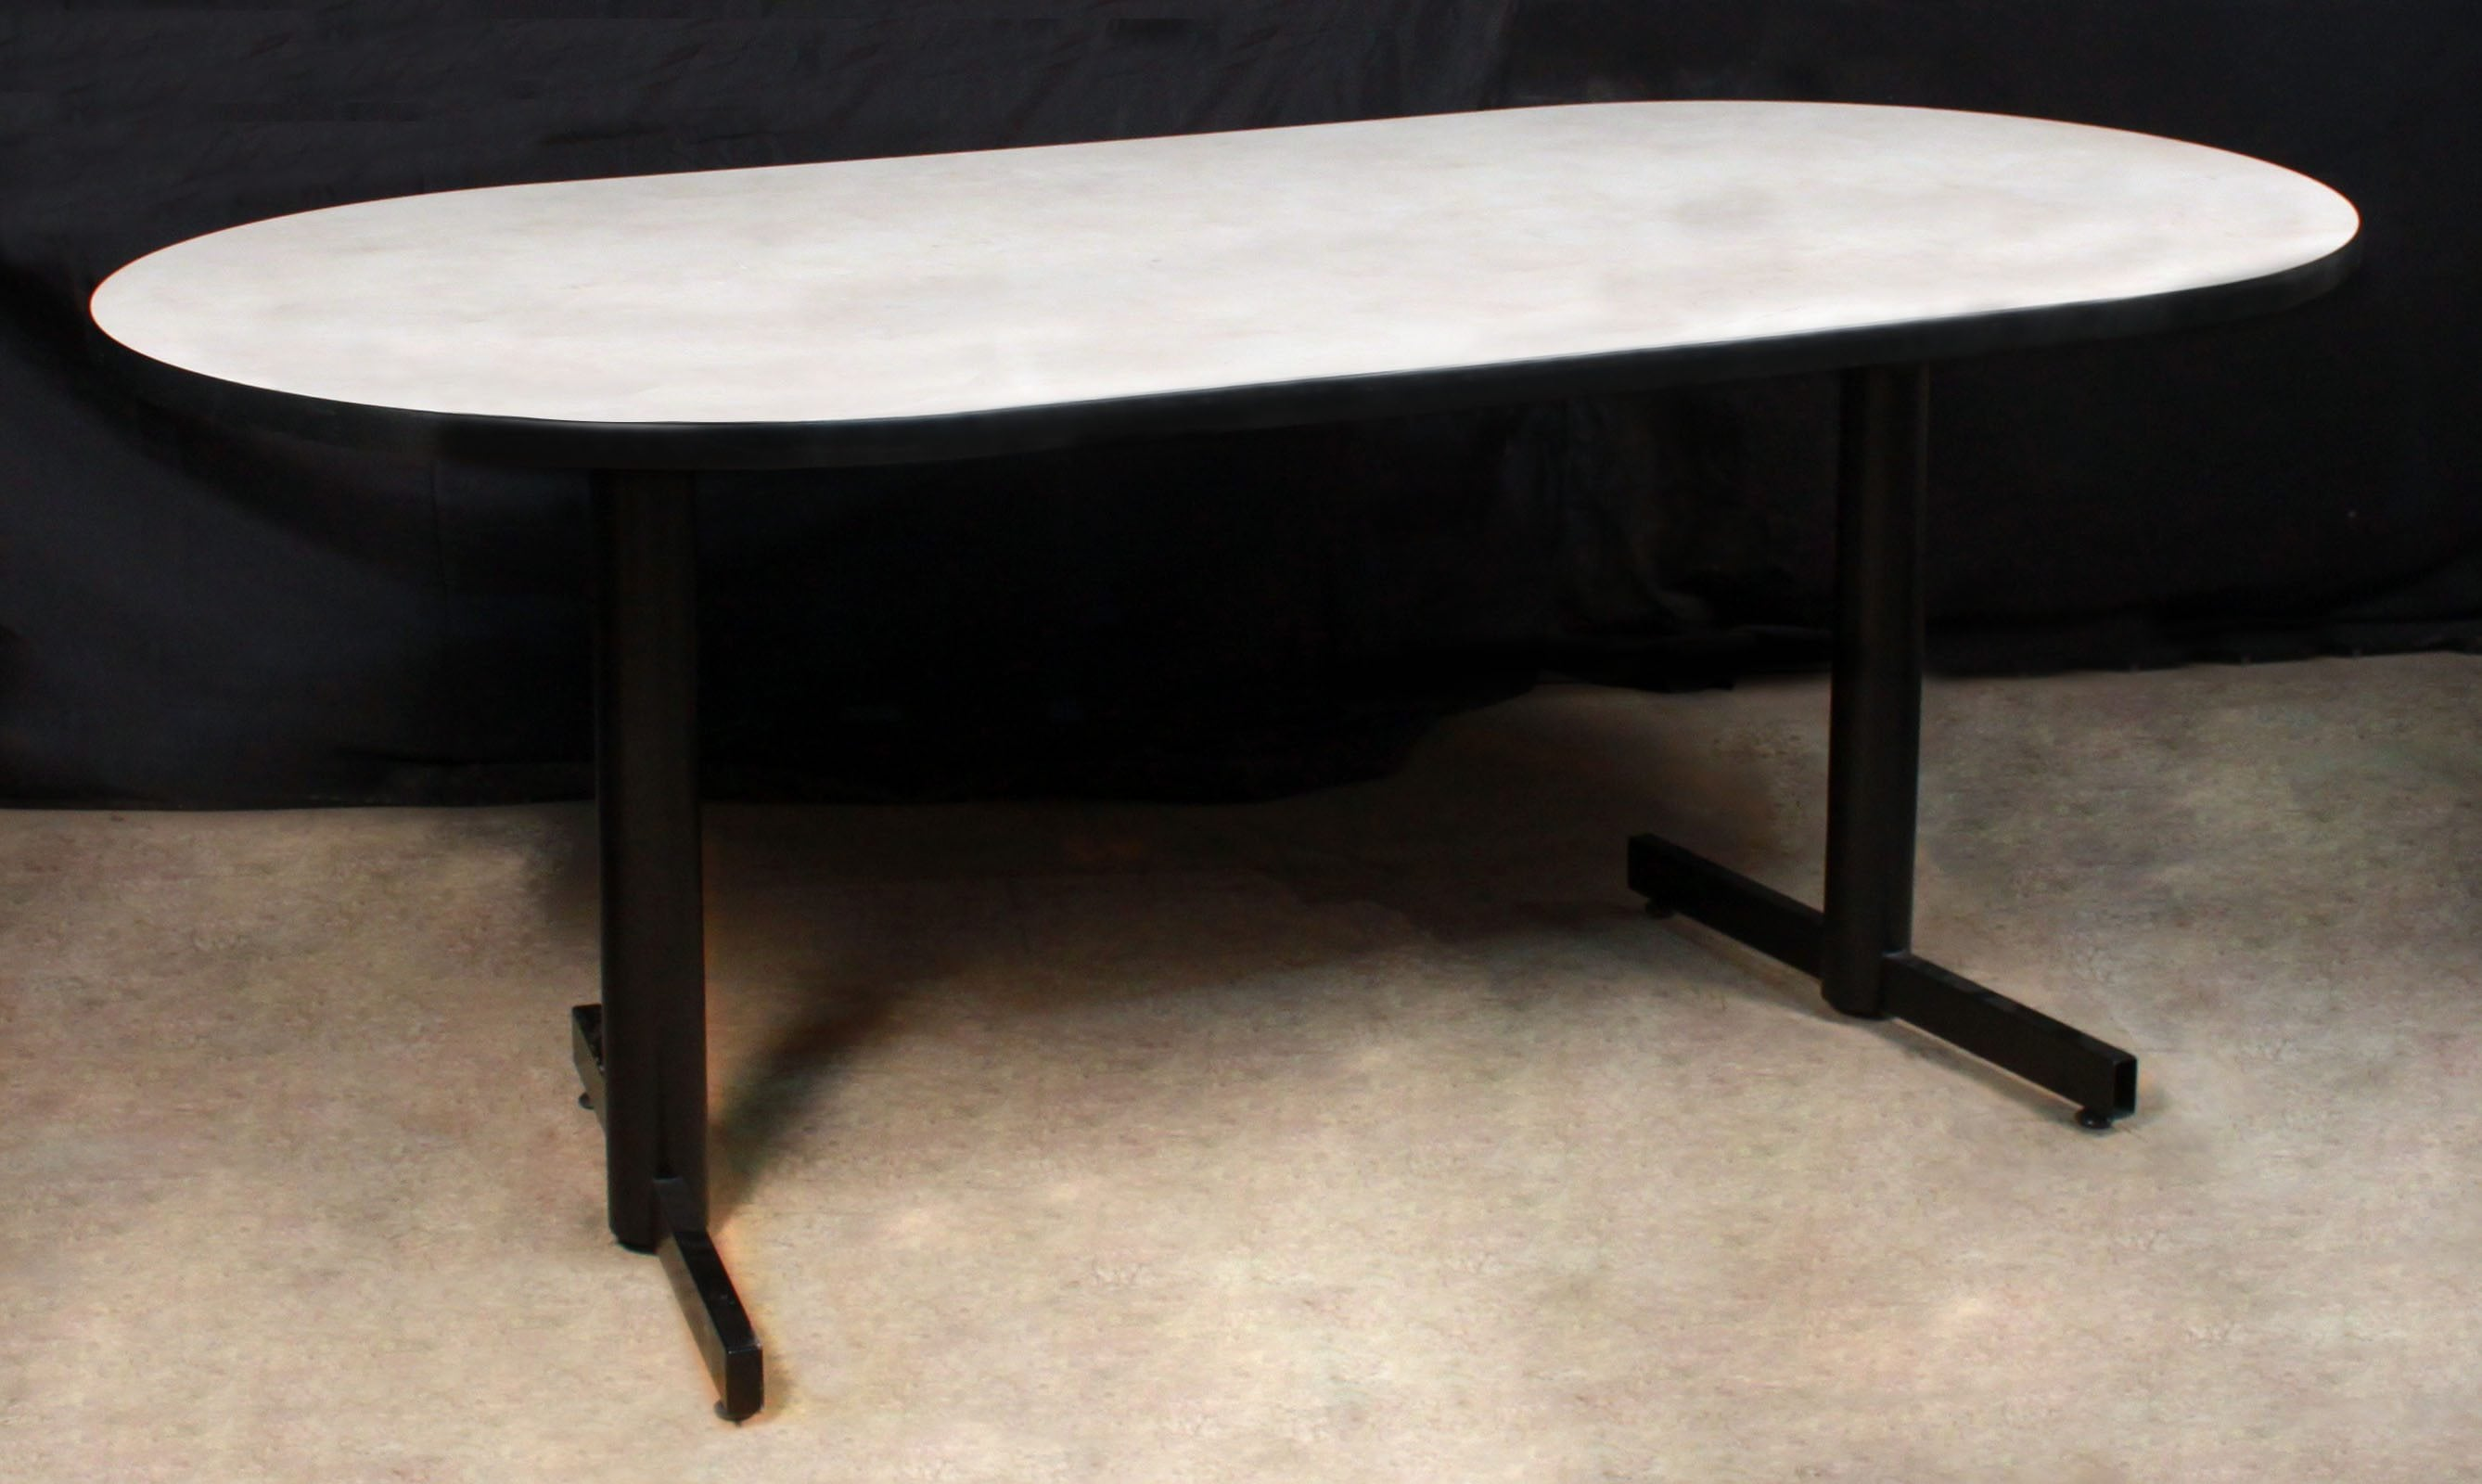 Oval Used Foot Conference Table National Office Interiors And - Oval conference table for 6